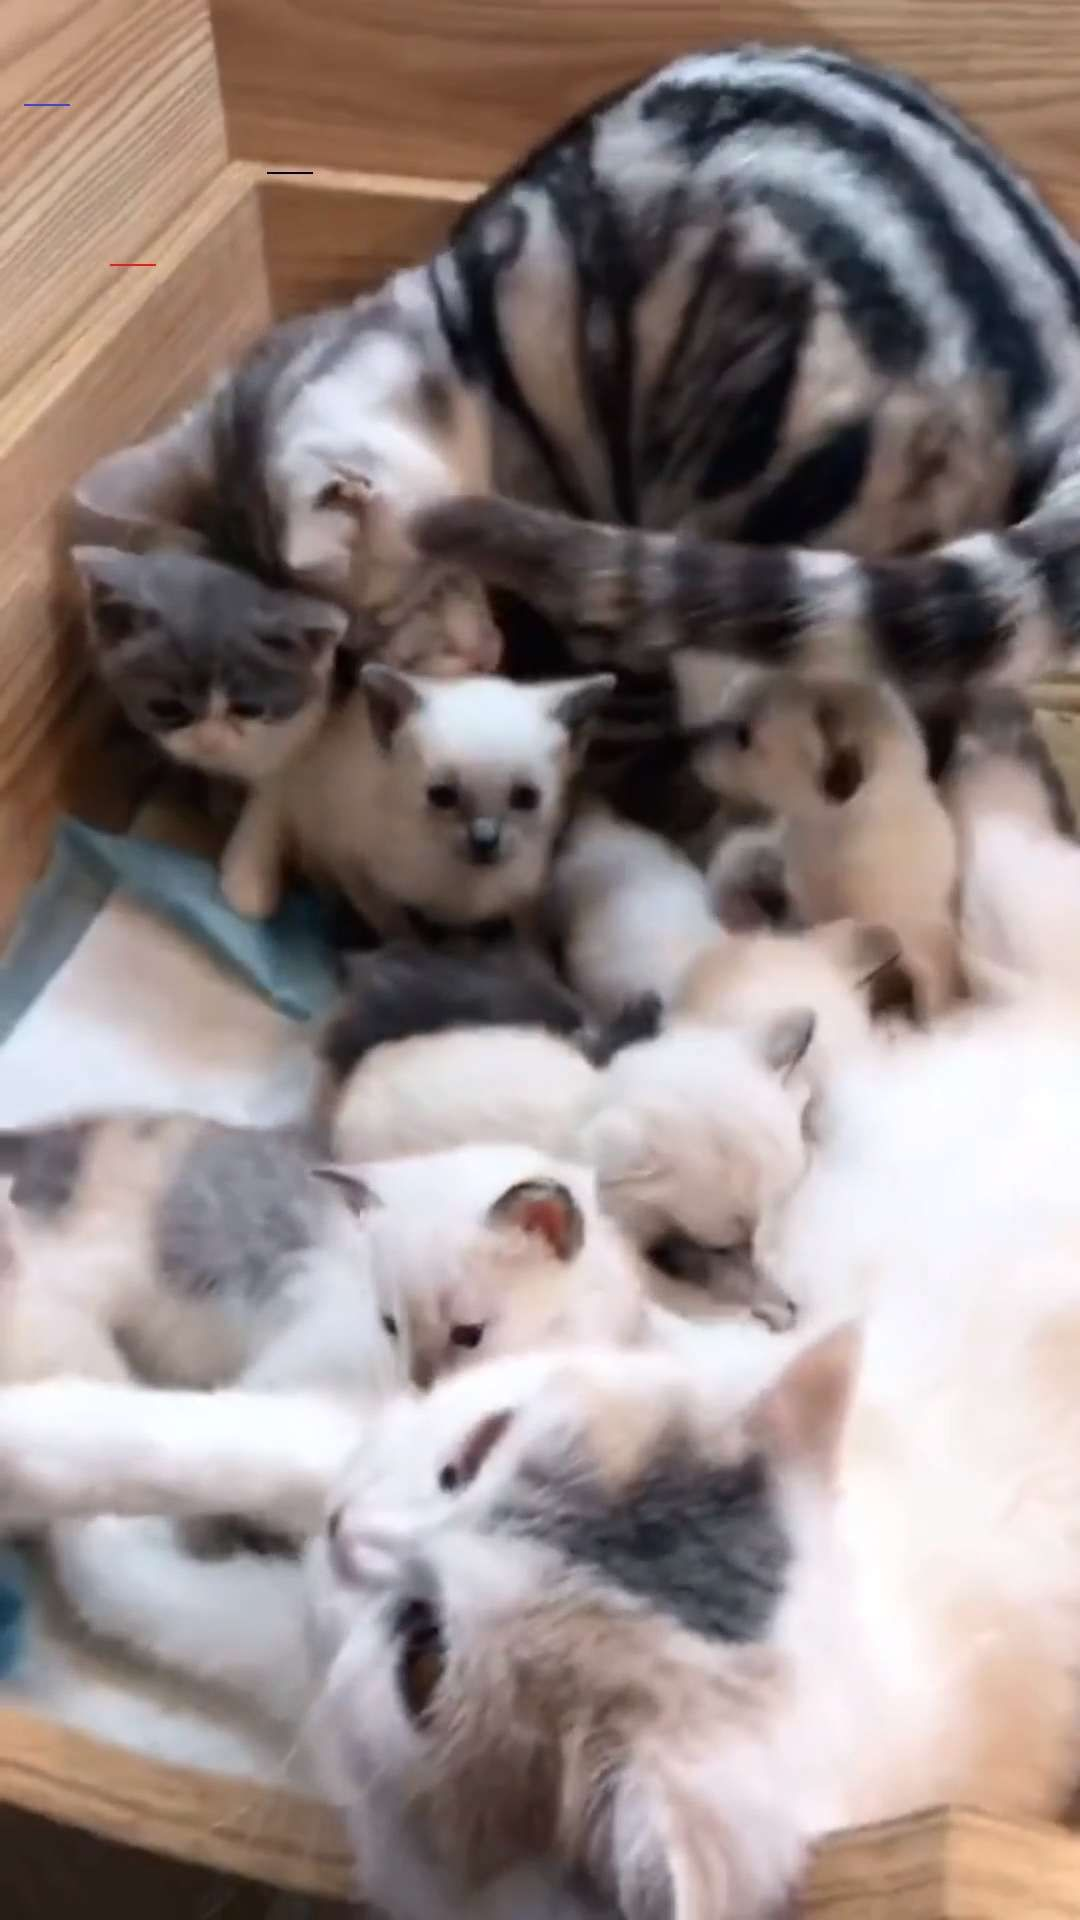 Mother Cat Takes Her Kitten Home Who Can Tell Me How Many Kittens There Are Toysfordogs My Small Cat Rolls In 2020 Cute Baby Animals Cute Animals Funny Animals